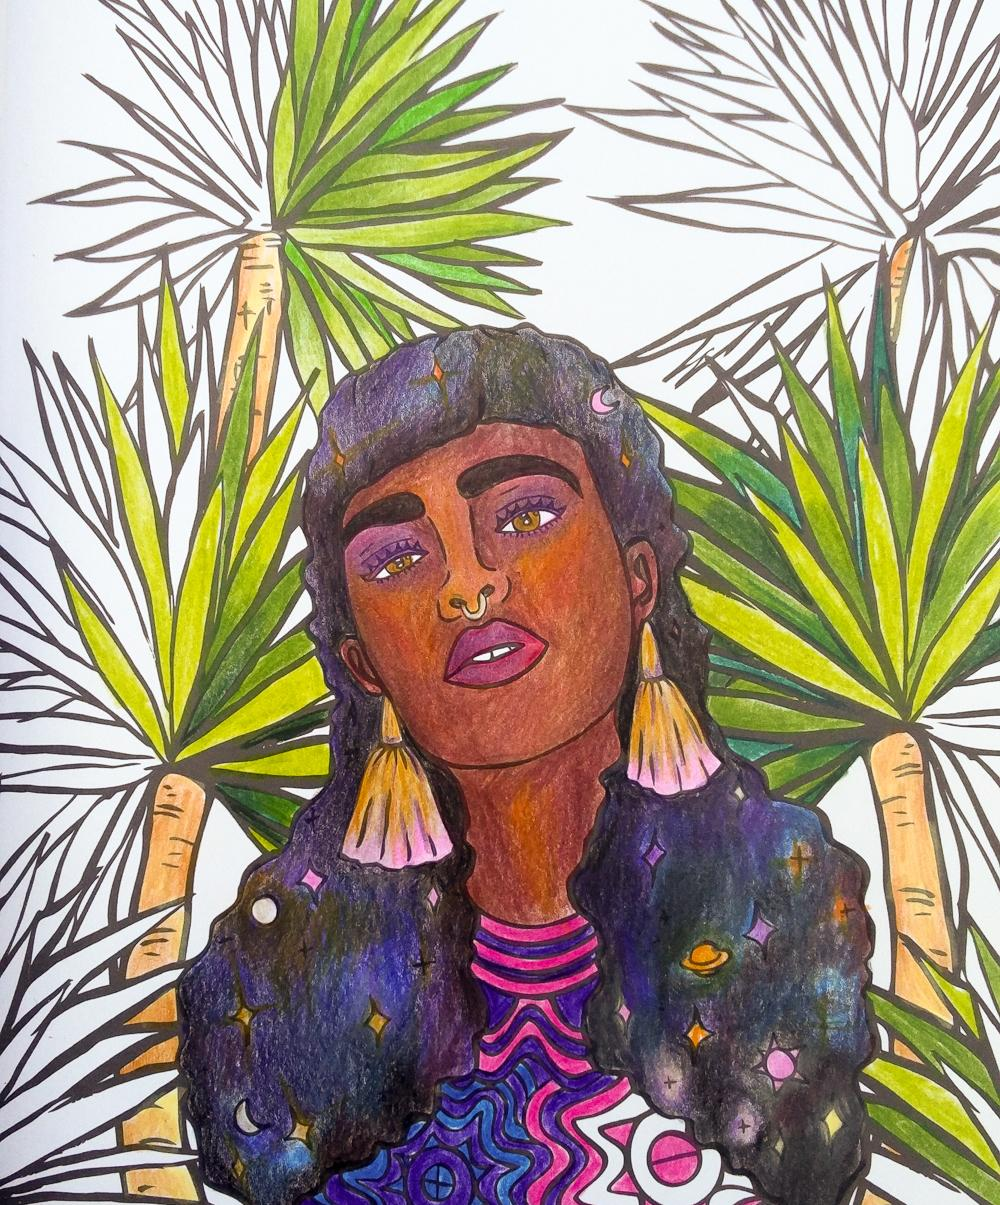 A partially coloured-in page from W+P+P featuring a Black woman gazing out from within some super luscious green tropical foliage